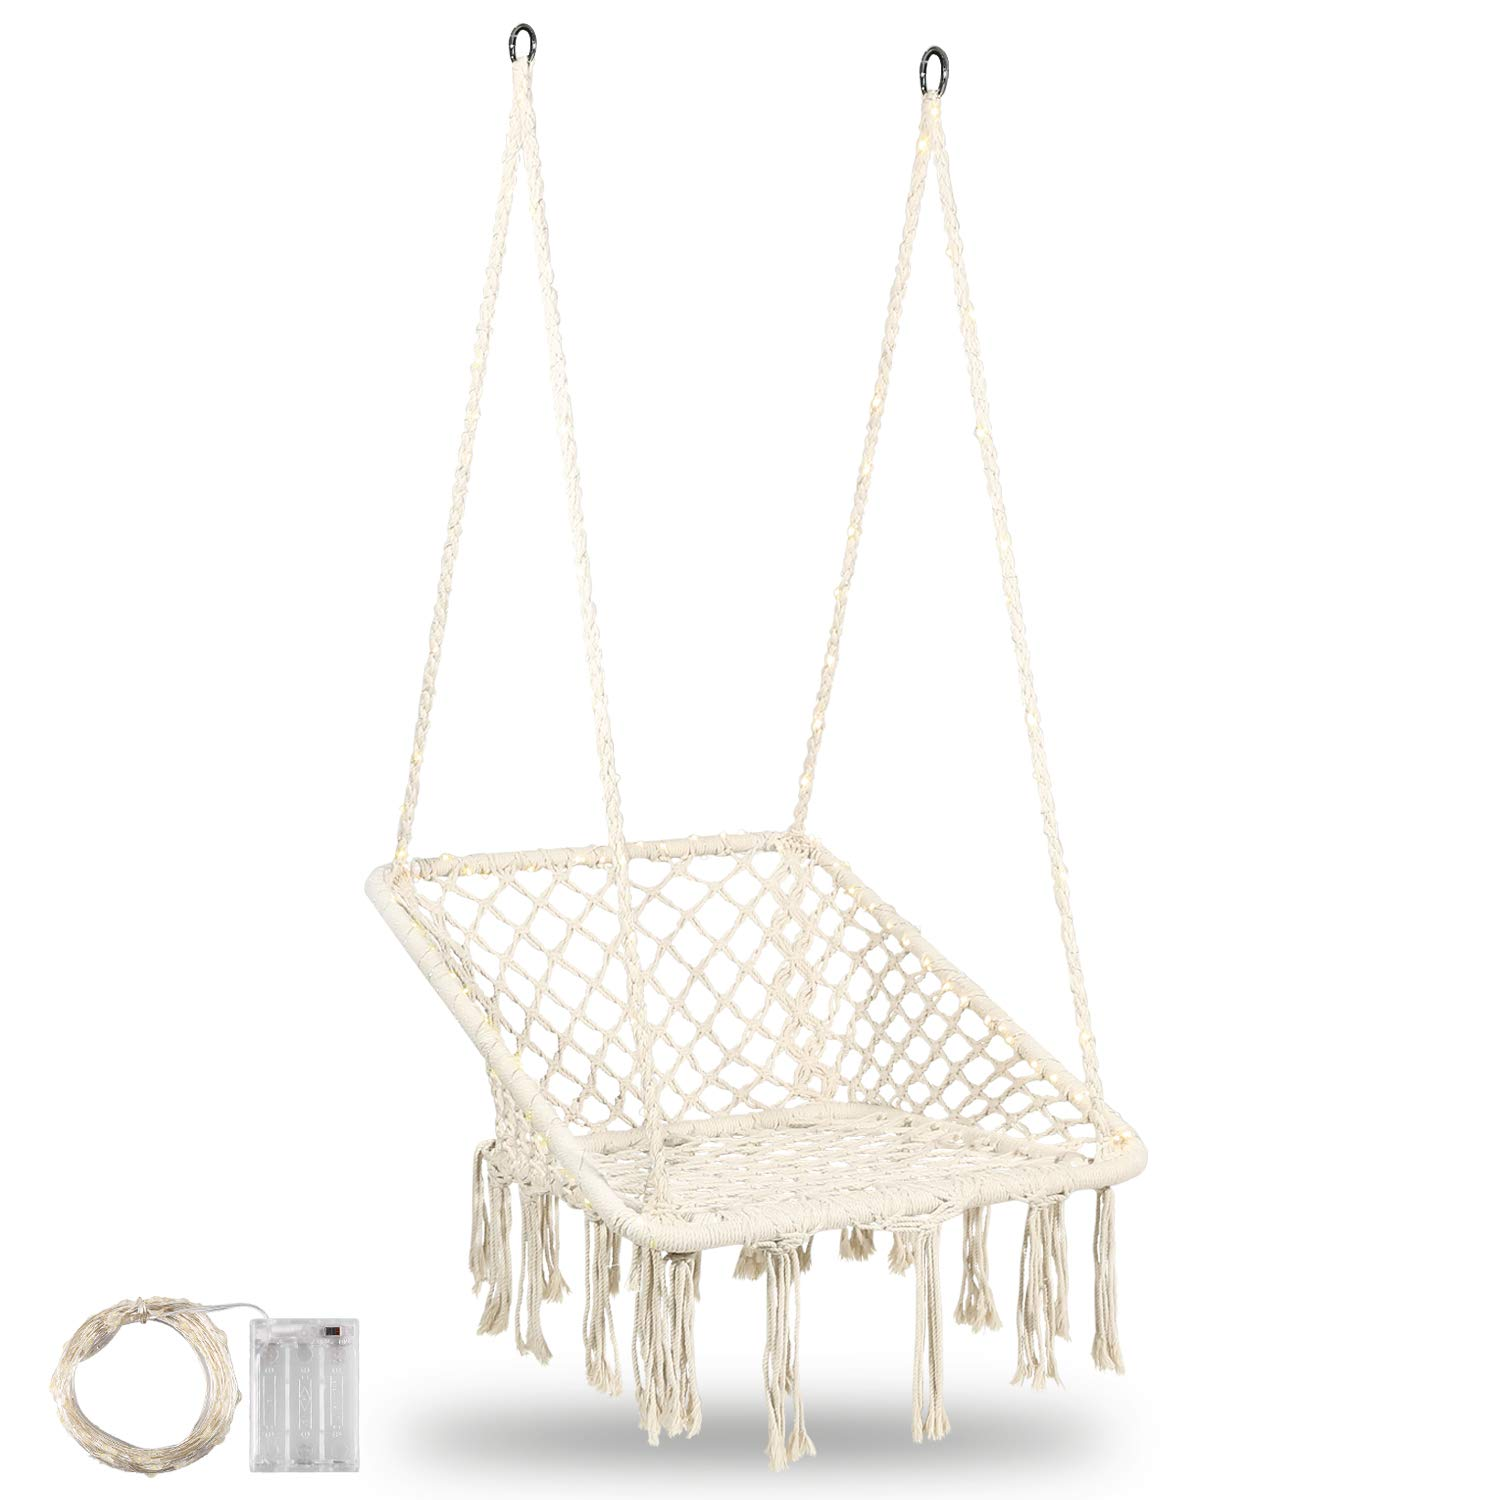 X-cosrack Hammock Chair with Lights – Cotton Square Shape for Patio Bedroom Balcony